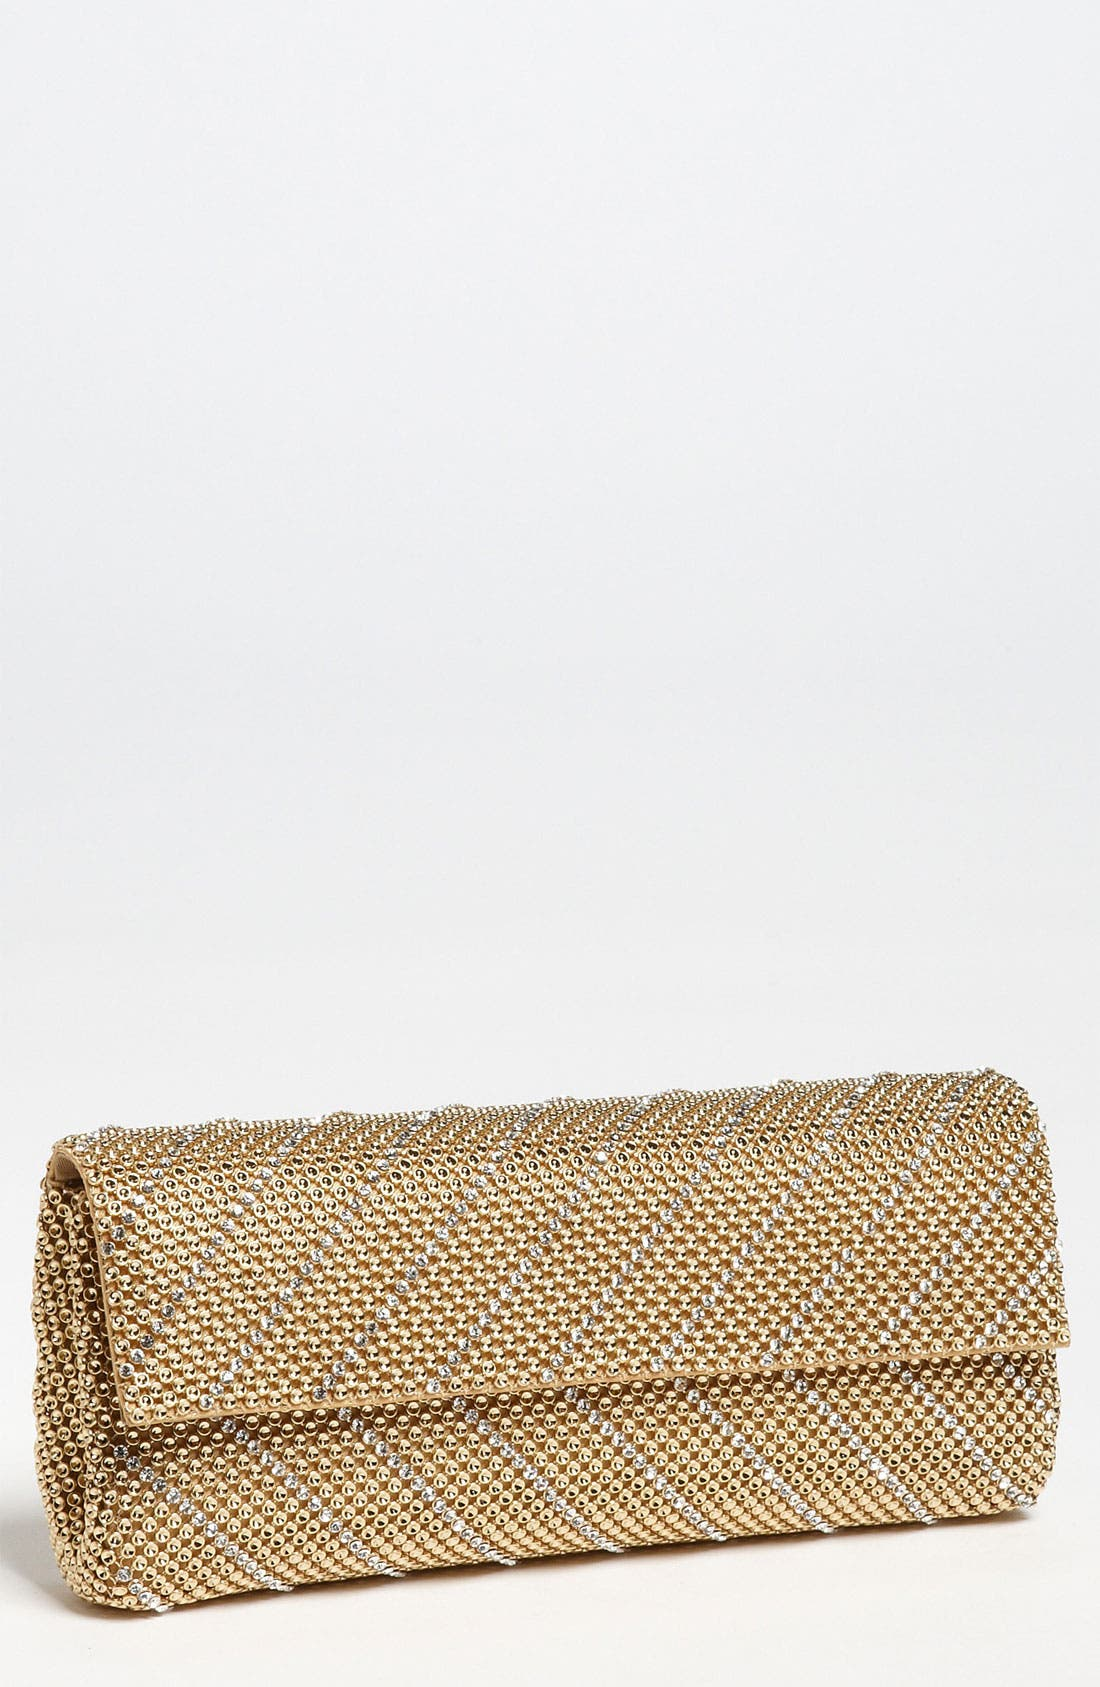 Whiting & Davis 'Crystal Chevron' Flap Clutch